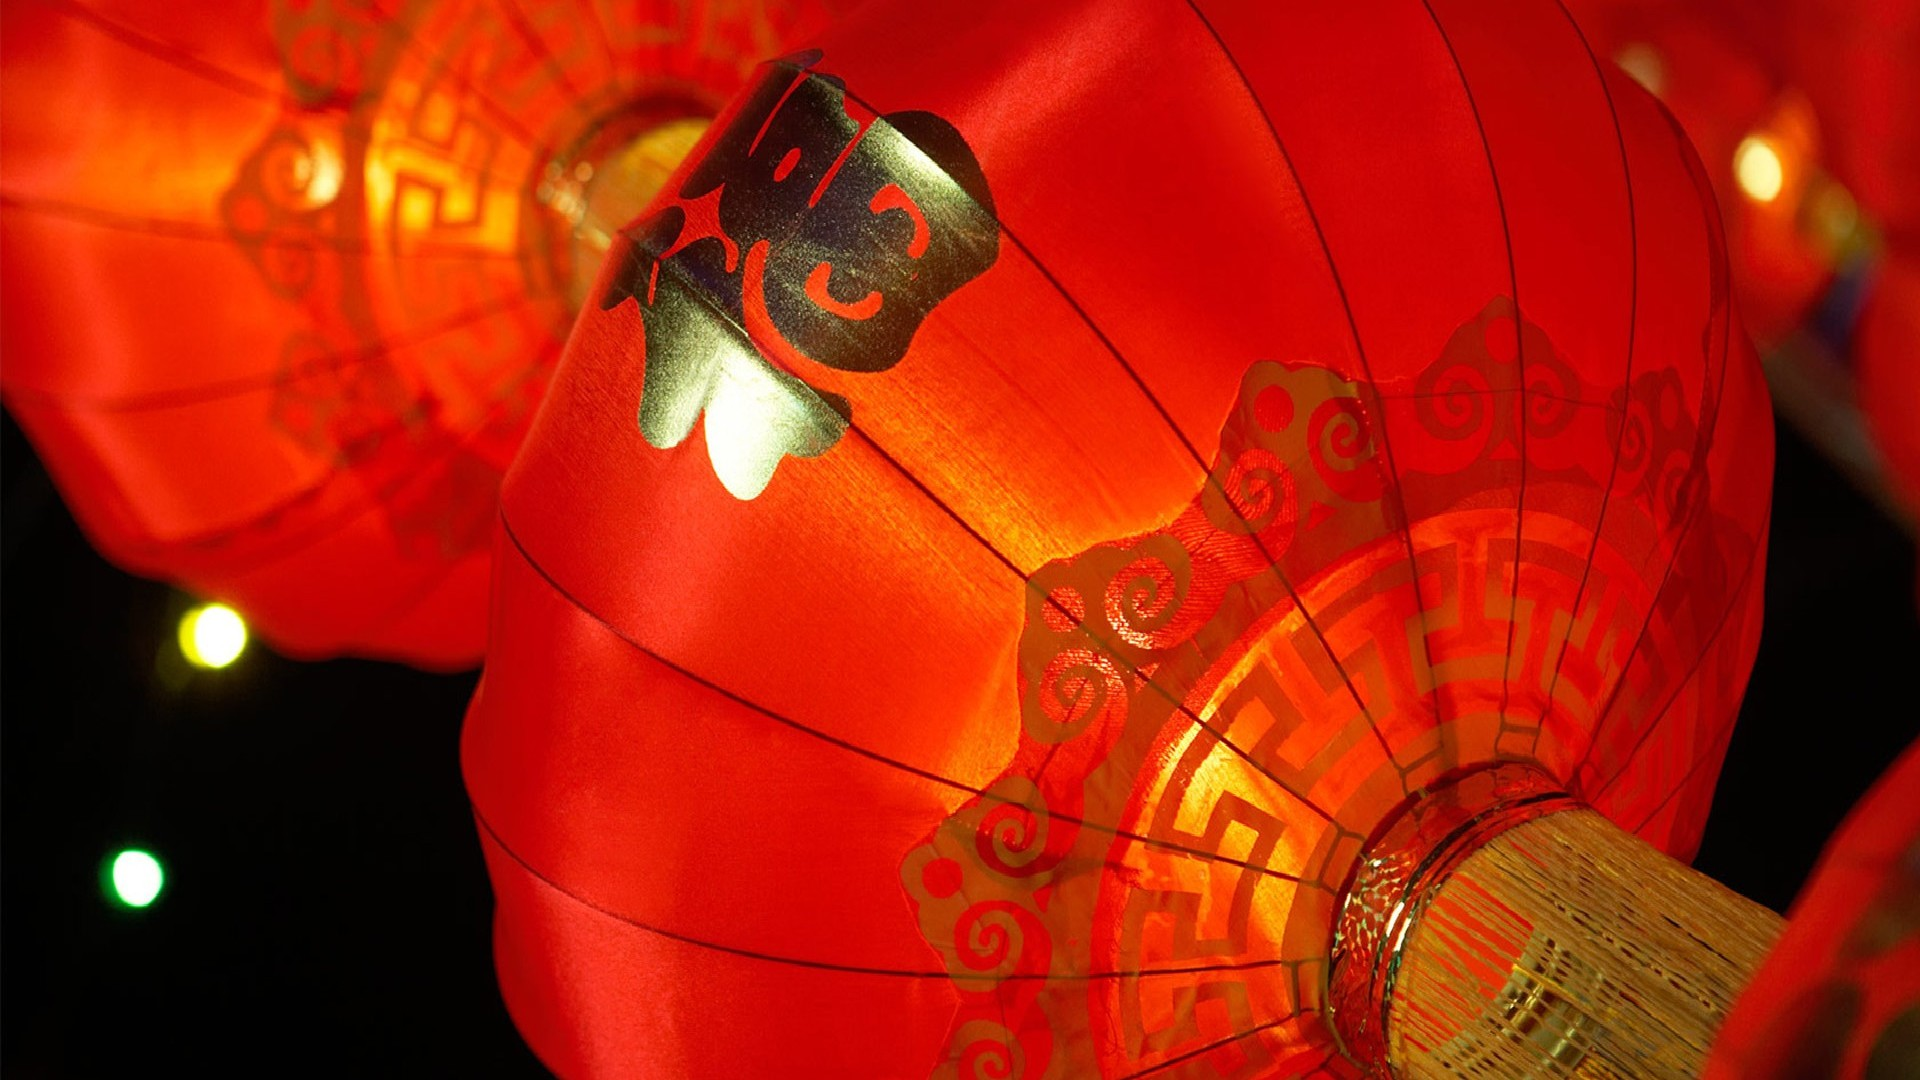 wallpaper.wiki-desktop-chinese-new-year-hd-photos-pic-wpb0012530